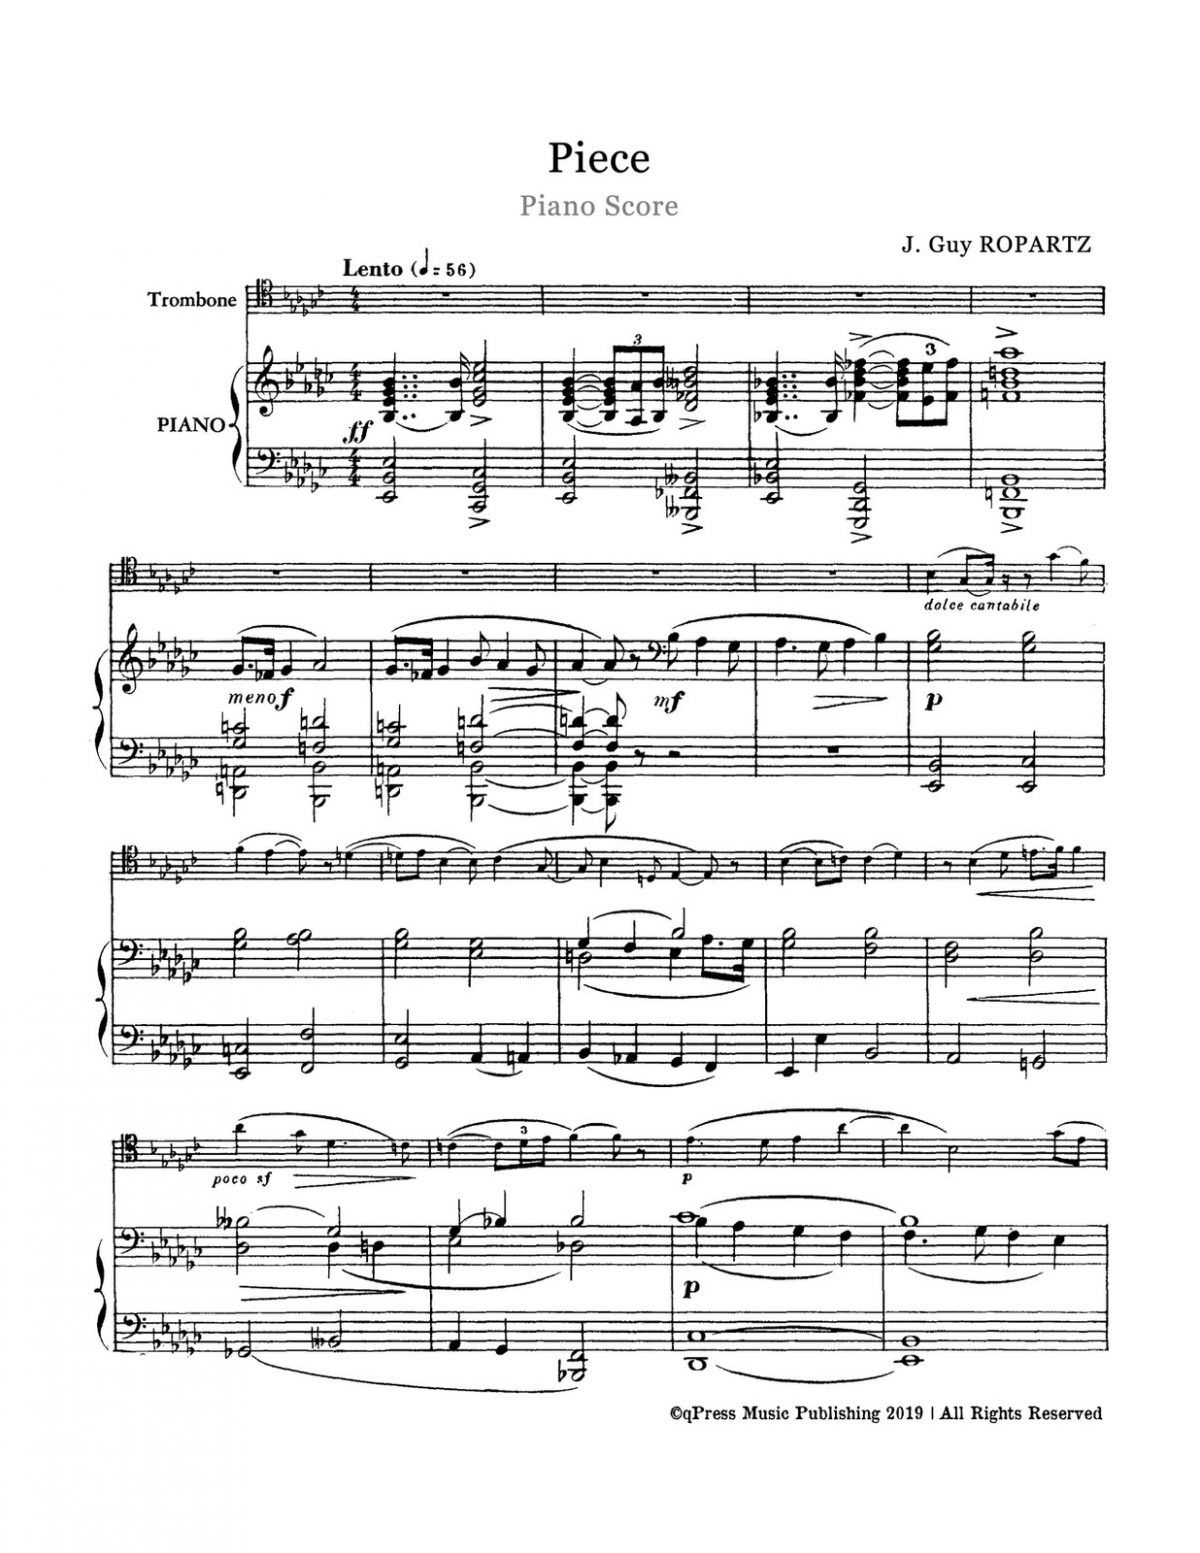 Ropartz, Piece for Trombone and Piano-p08